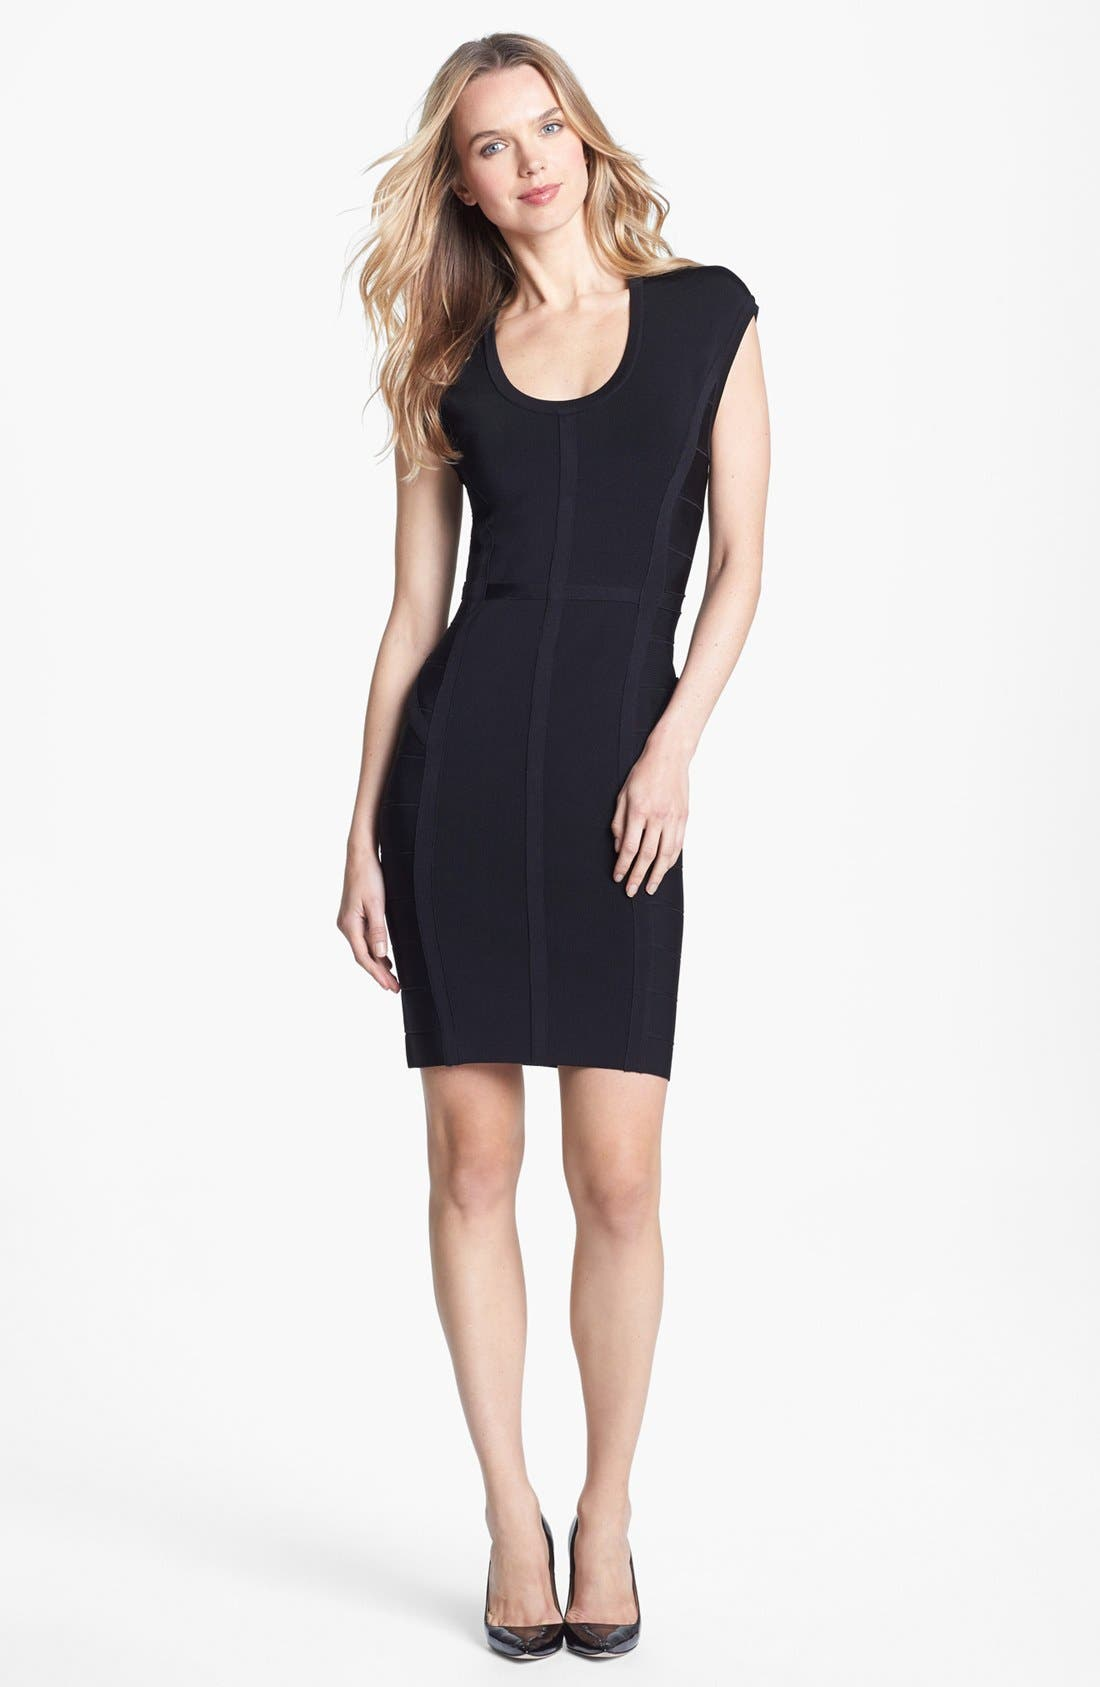 Alternate Image 1 Selected - Vince Camuto Banded Cap Sleeve Knit Dress